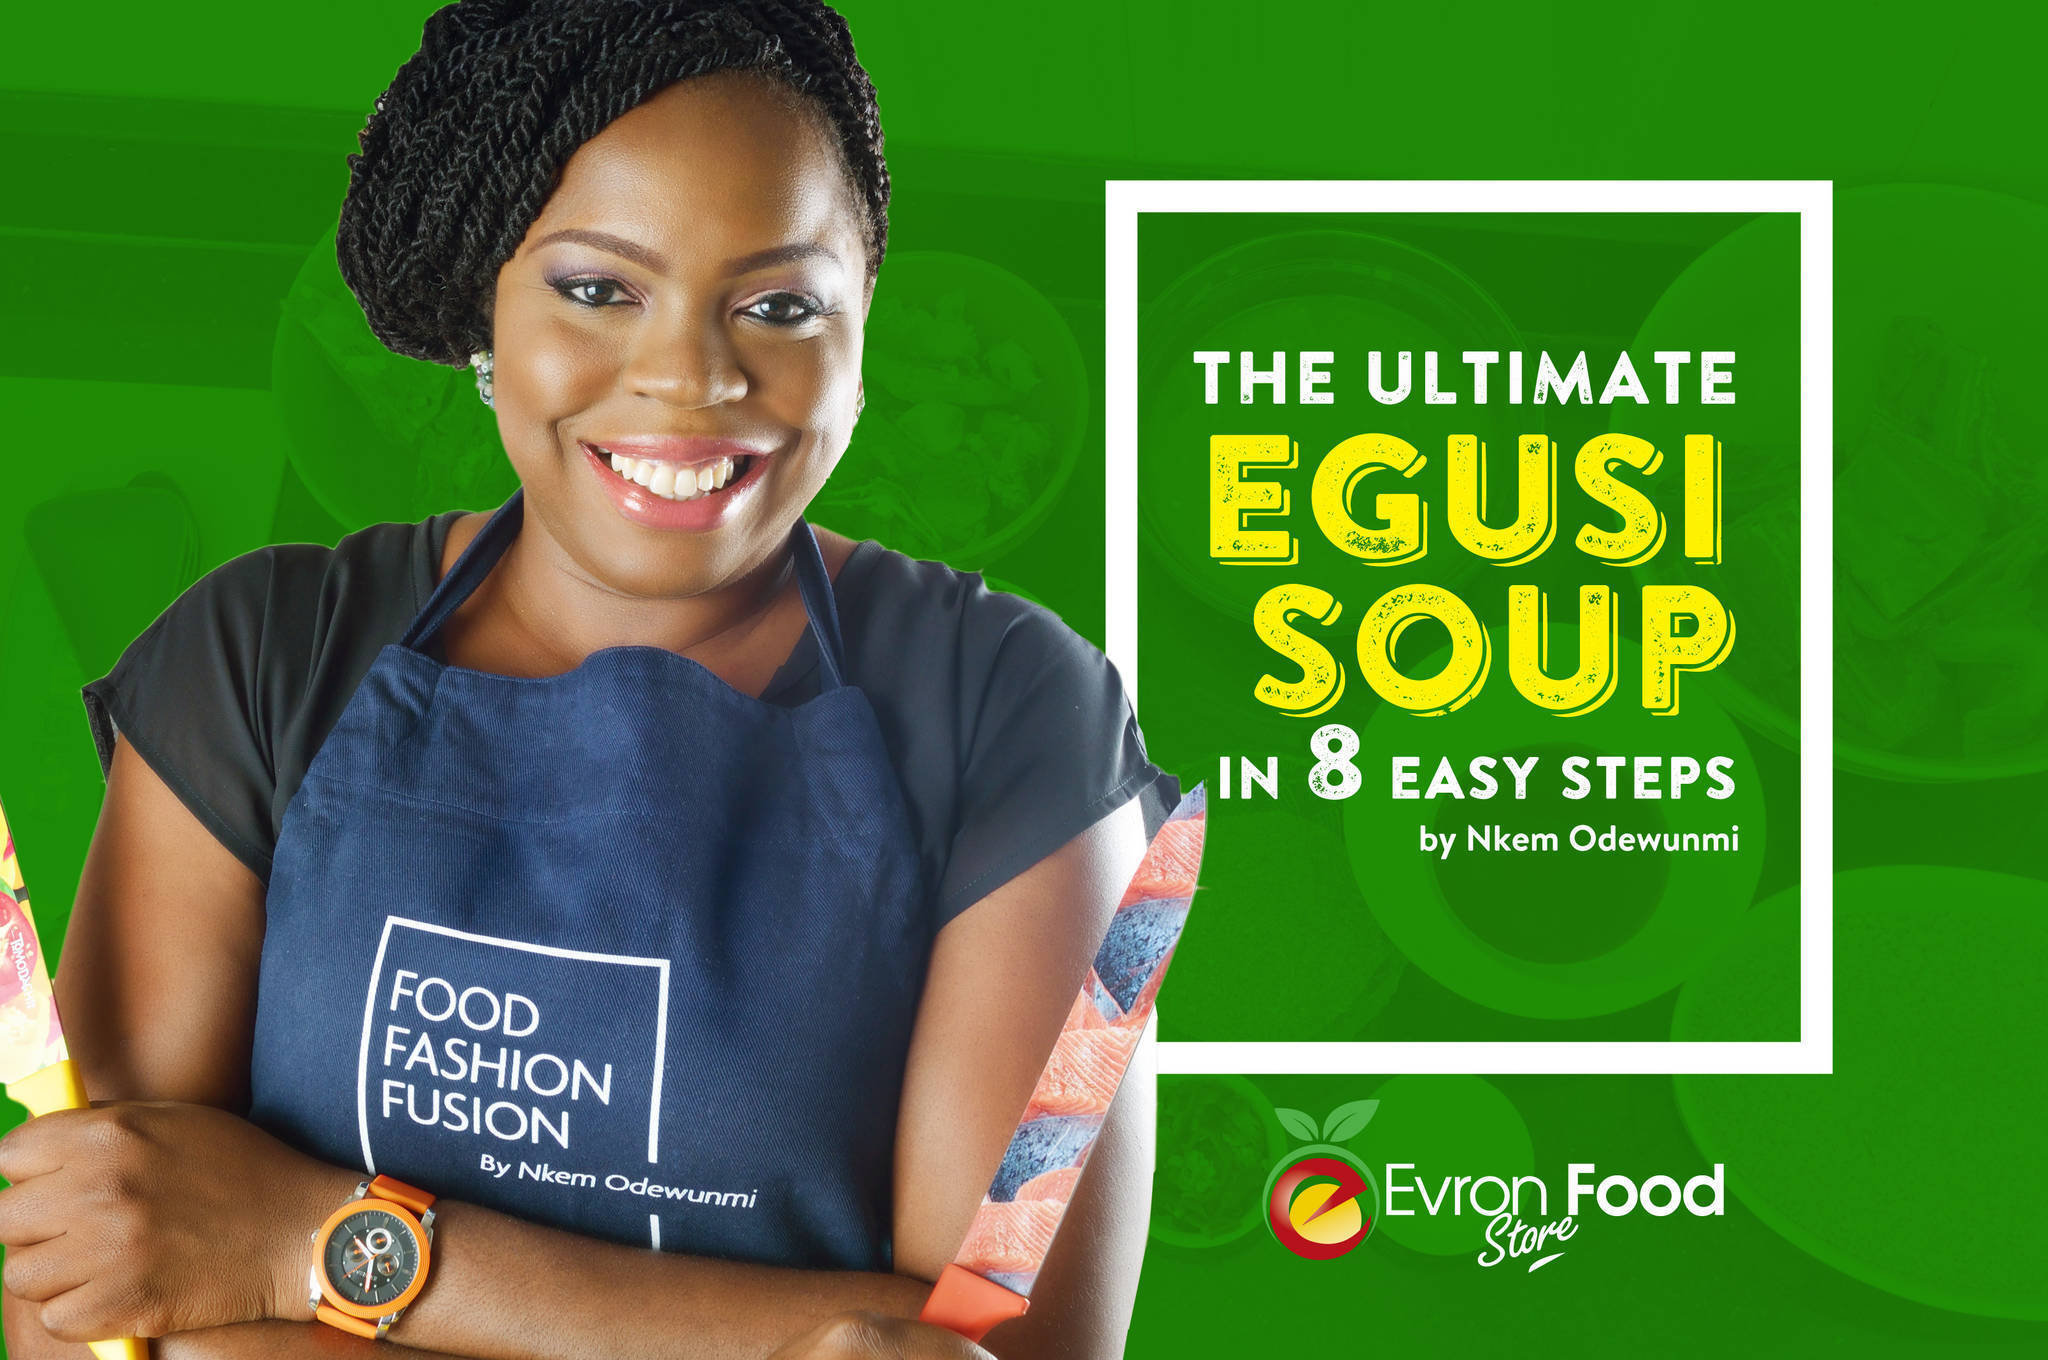 The Ultimate Egusi Soup